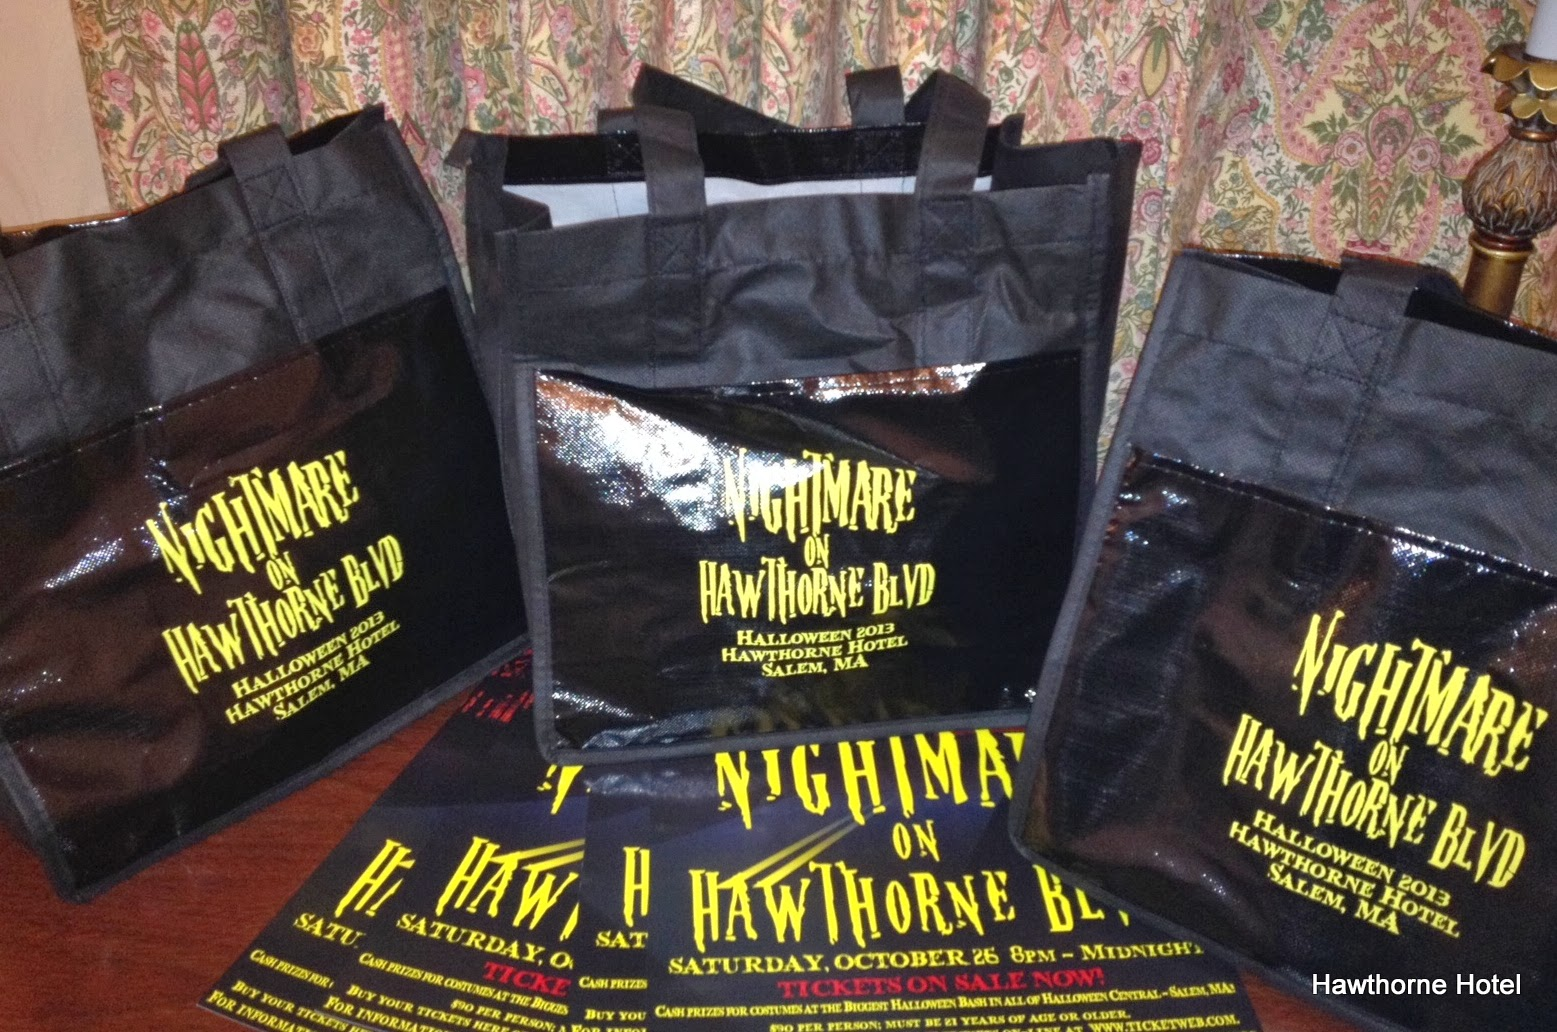 Hawthorne Hotel: Delivering the Swag Bags